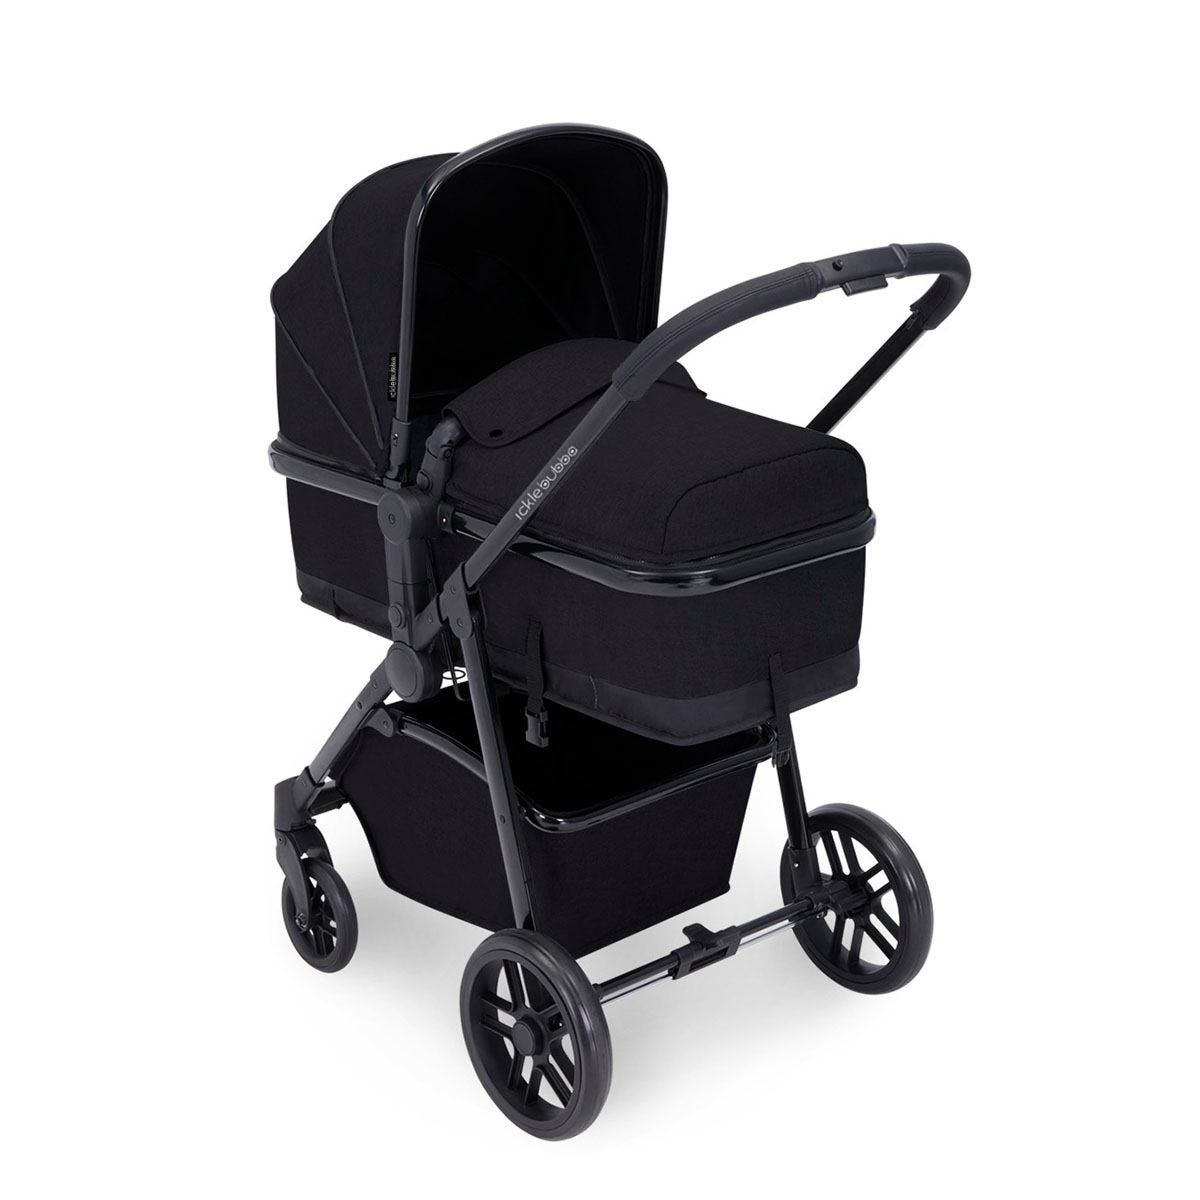 Ickle Bubba Moon 3 in 1 Travel System - Black on Black with Black Handles